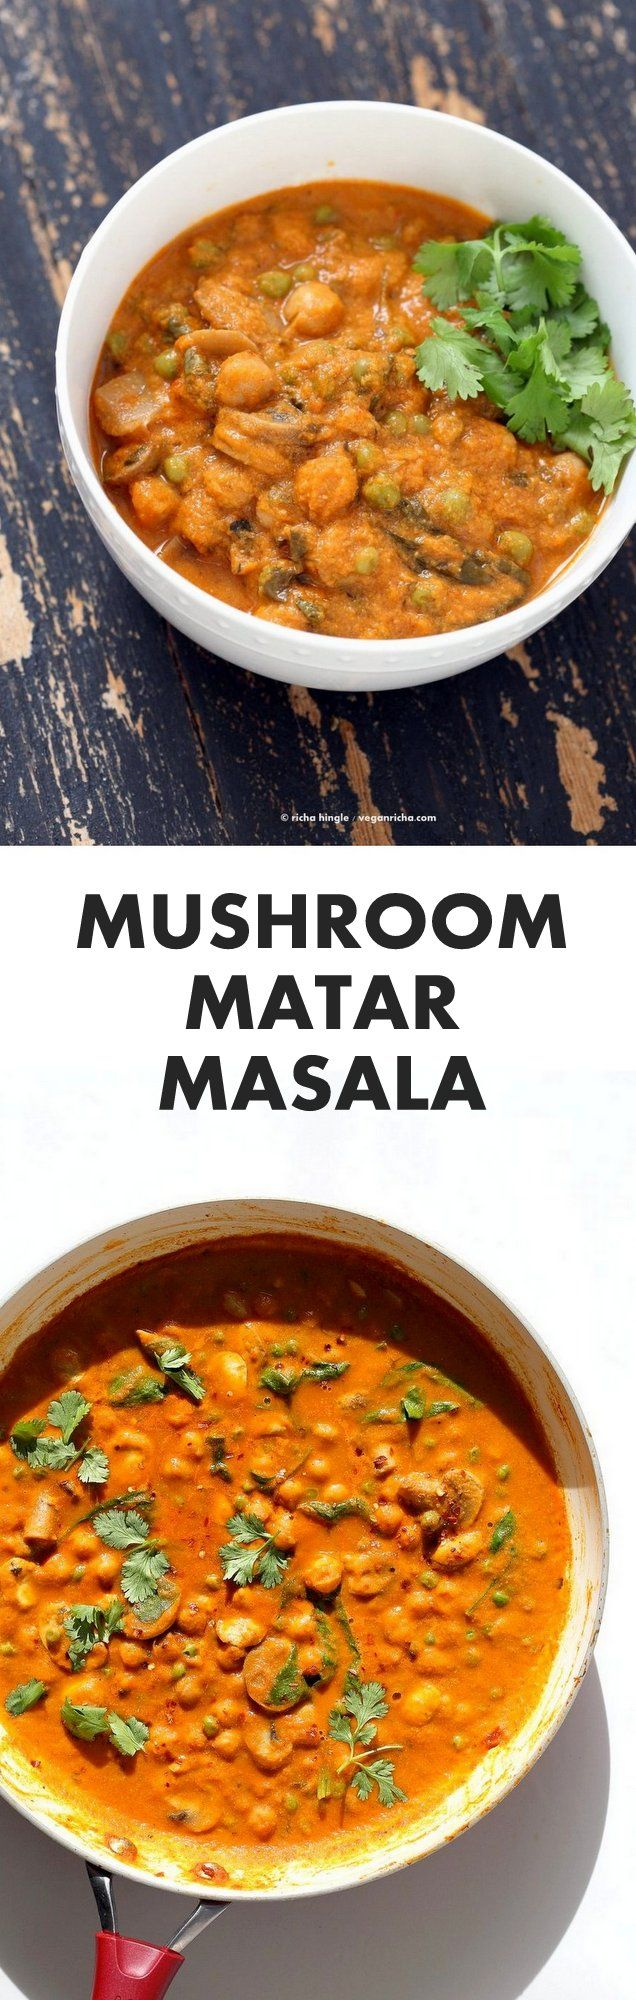 Mushroom Matar Masala. Mushrooms Peas Spinach in creamy tomato sauce. Mushroom Masala Recipe with Easy Masala Sauce. Vegan Indian Gluten-free Soy-free | VeganRicha.com